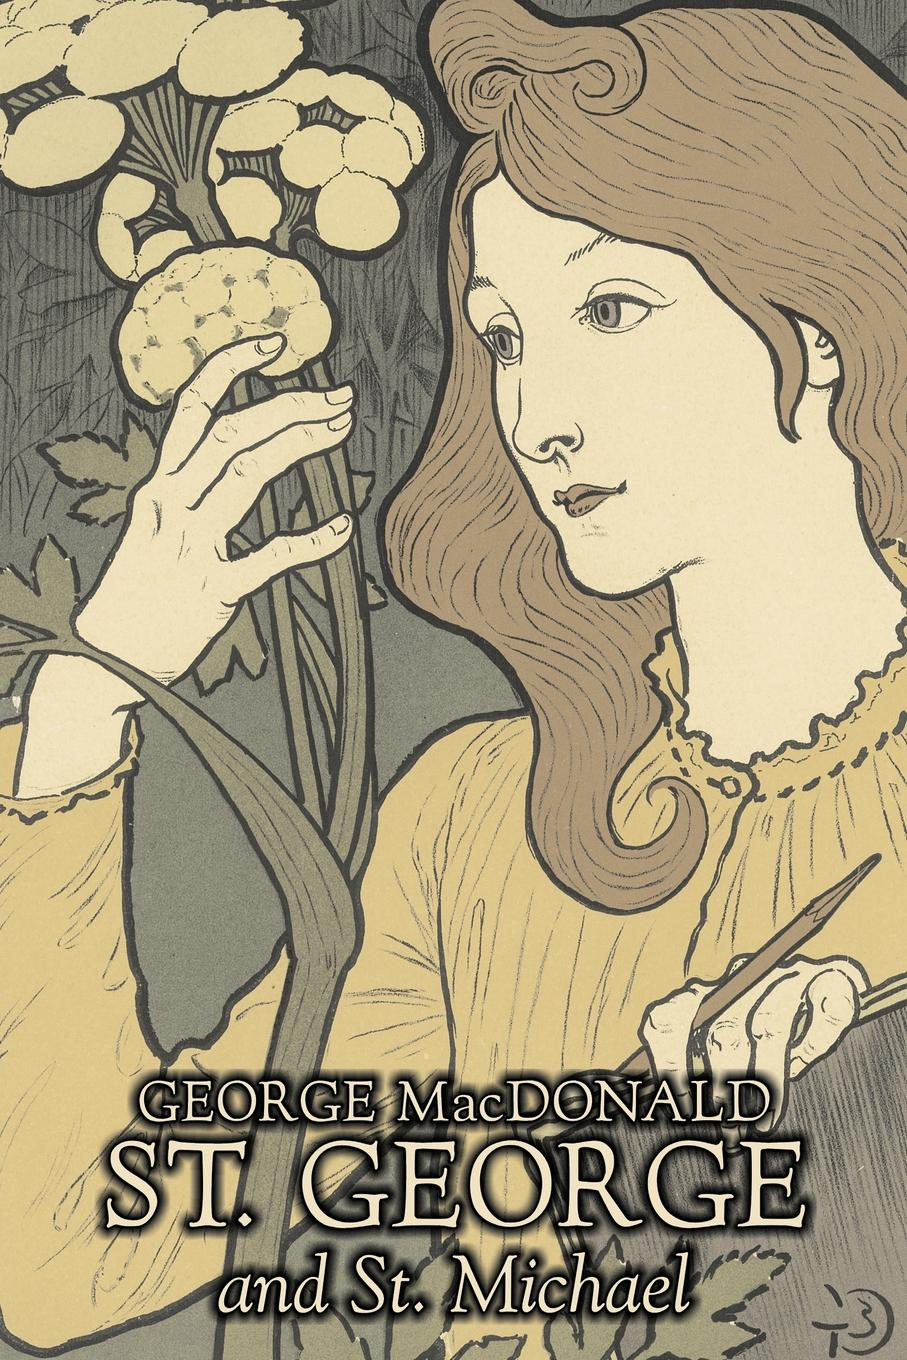 MacDonald George St. George and St. Michael by George Macdonald, Fiction, Classics, Action & Adventure george macdonald st george and st michael